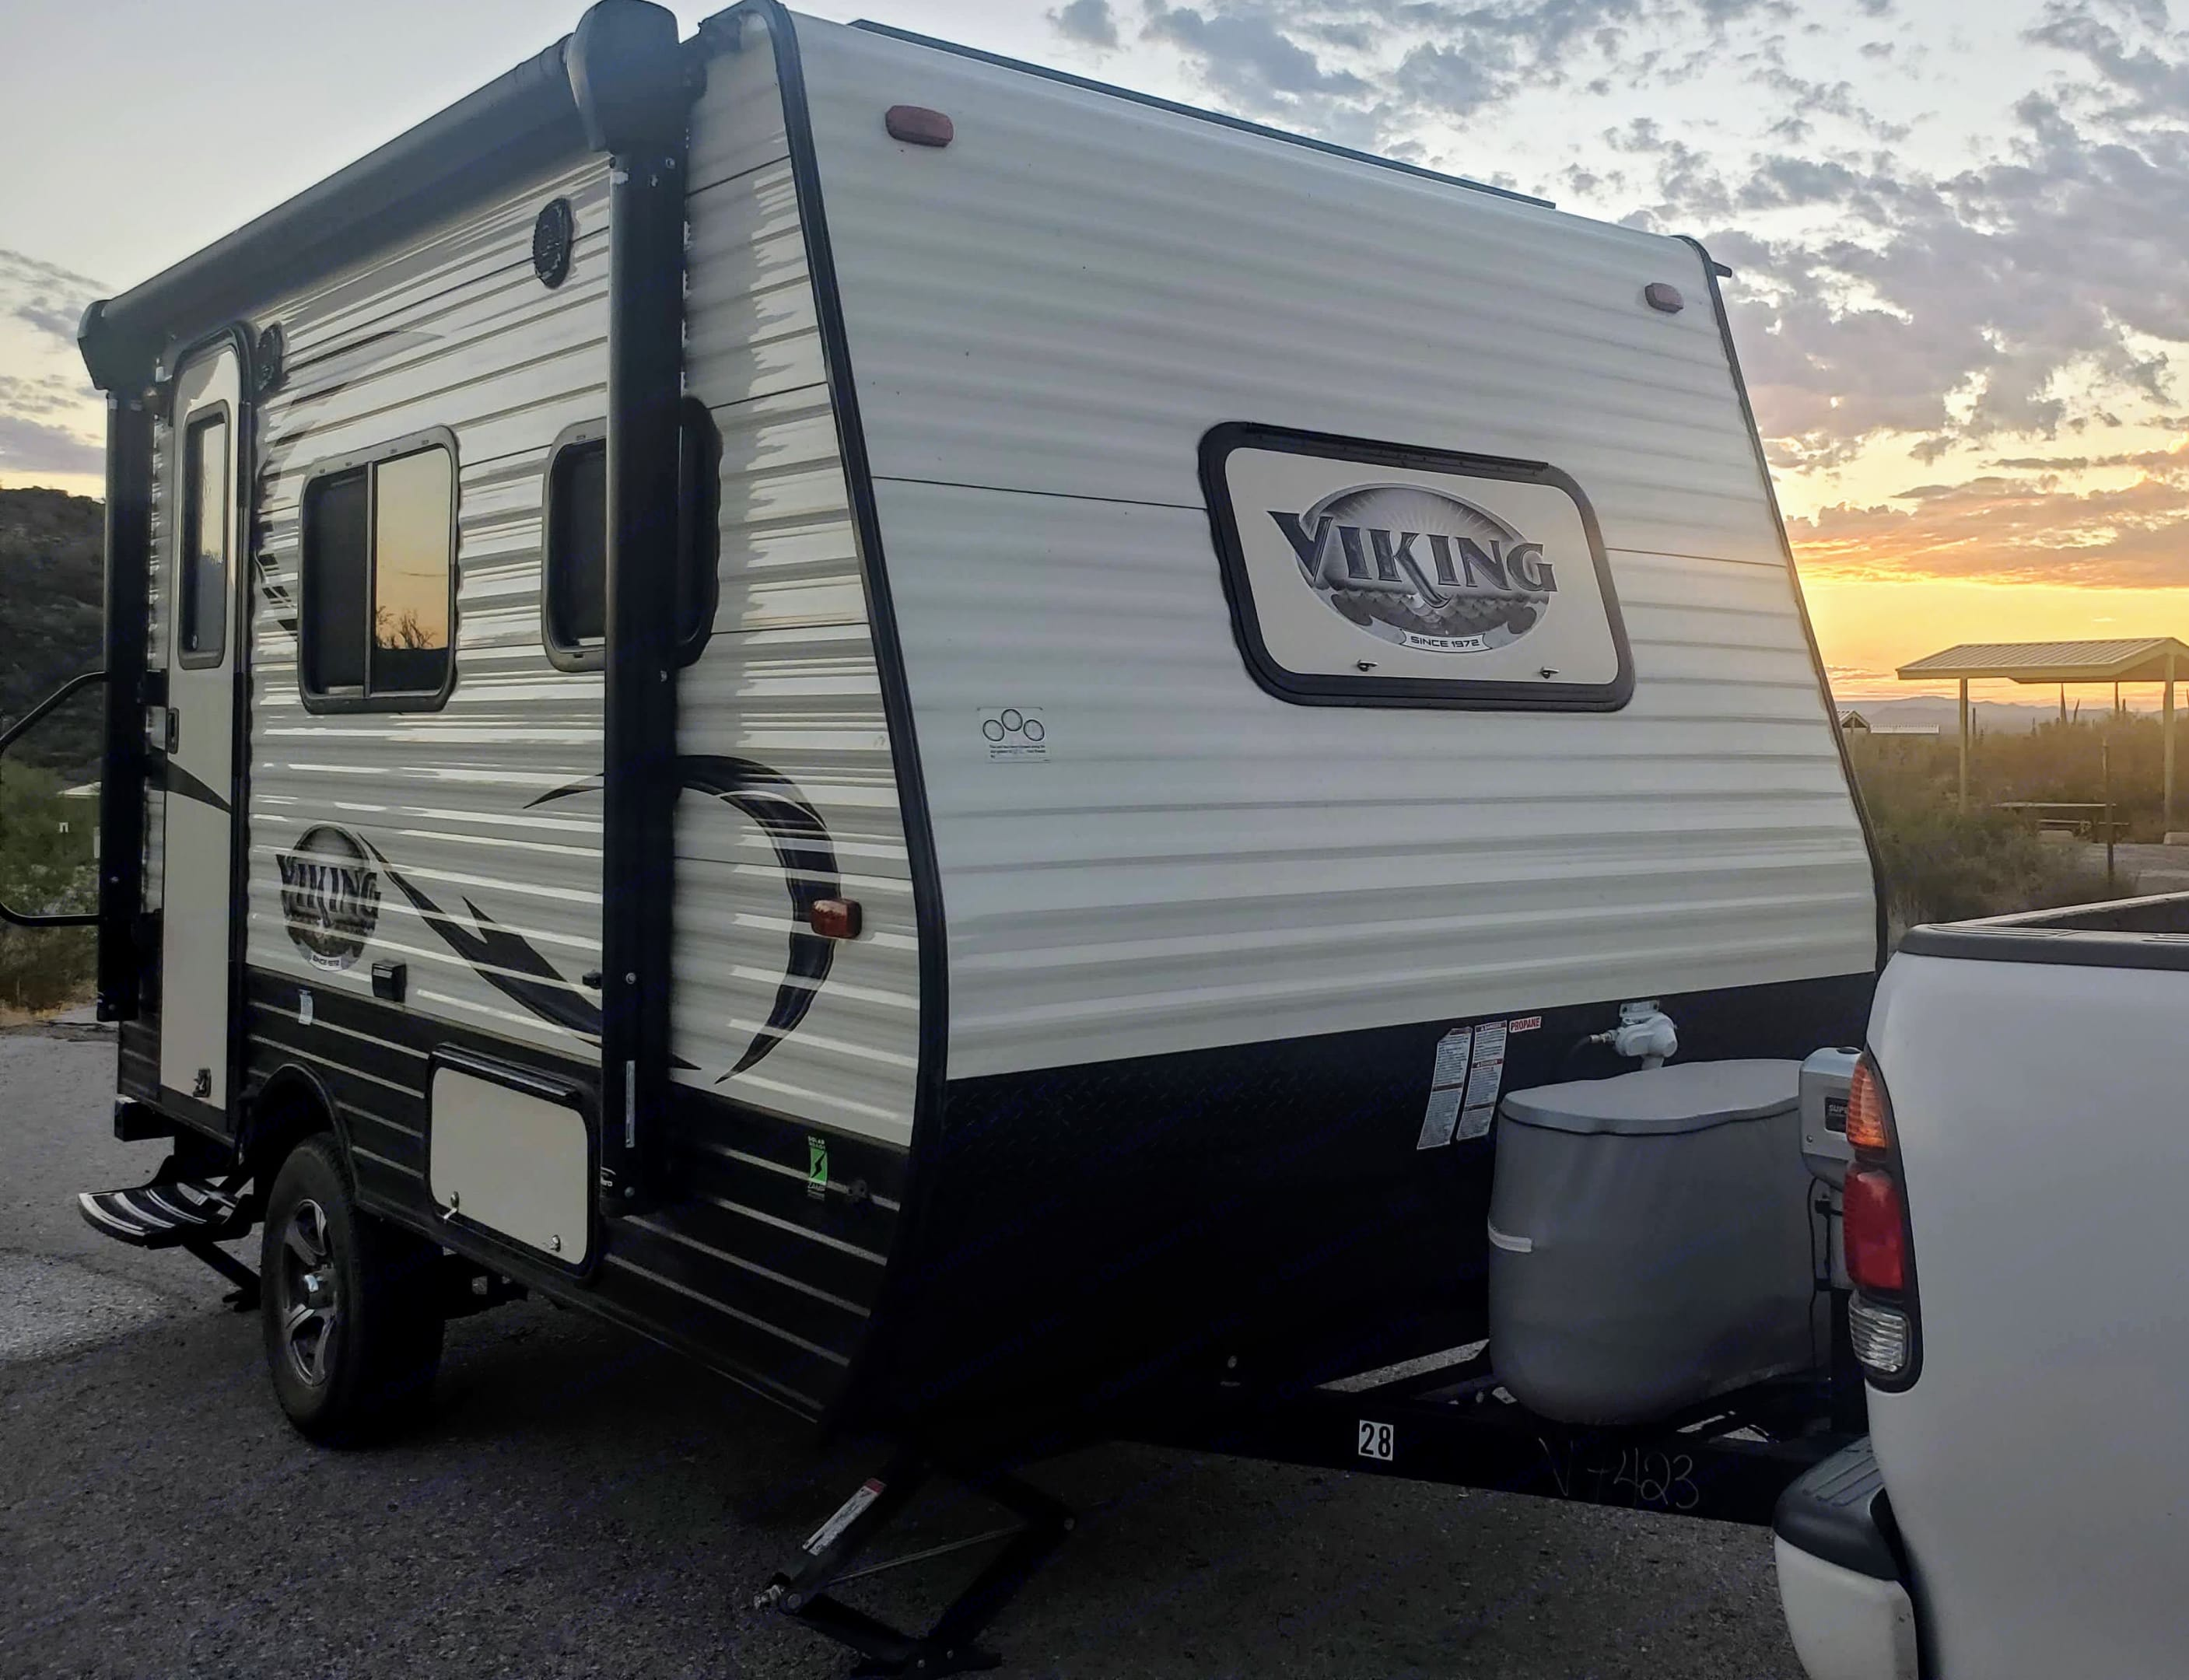 This trailer is tiny! 16ft long and 2500lbs dry.. Coachmen Viking 14R 2018